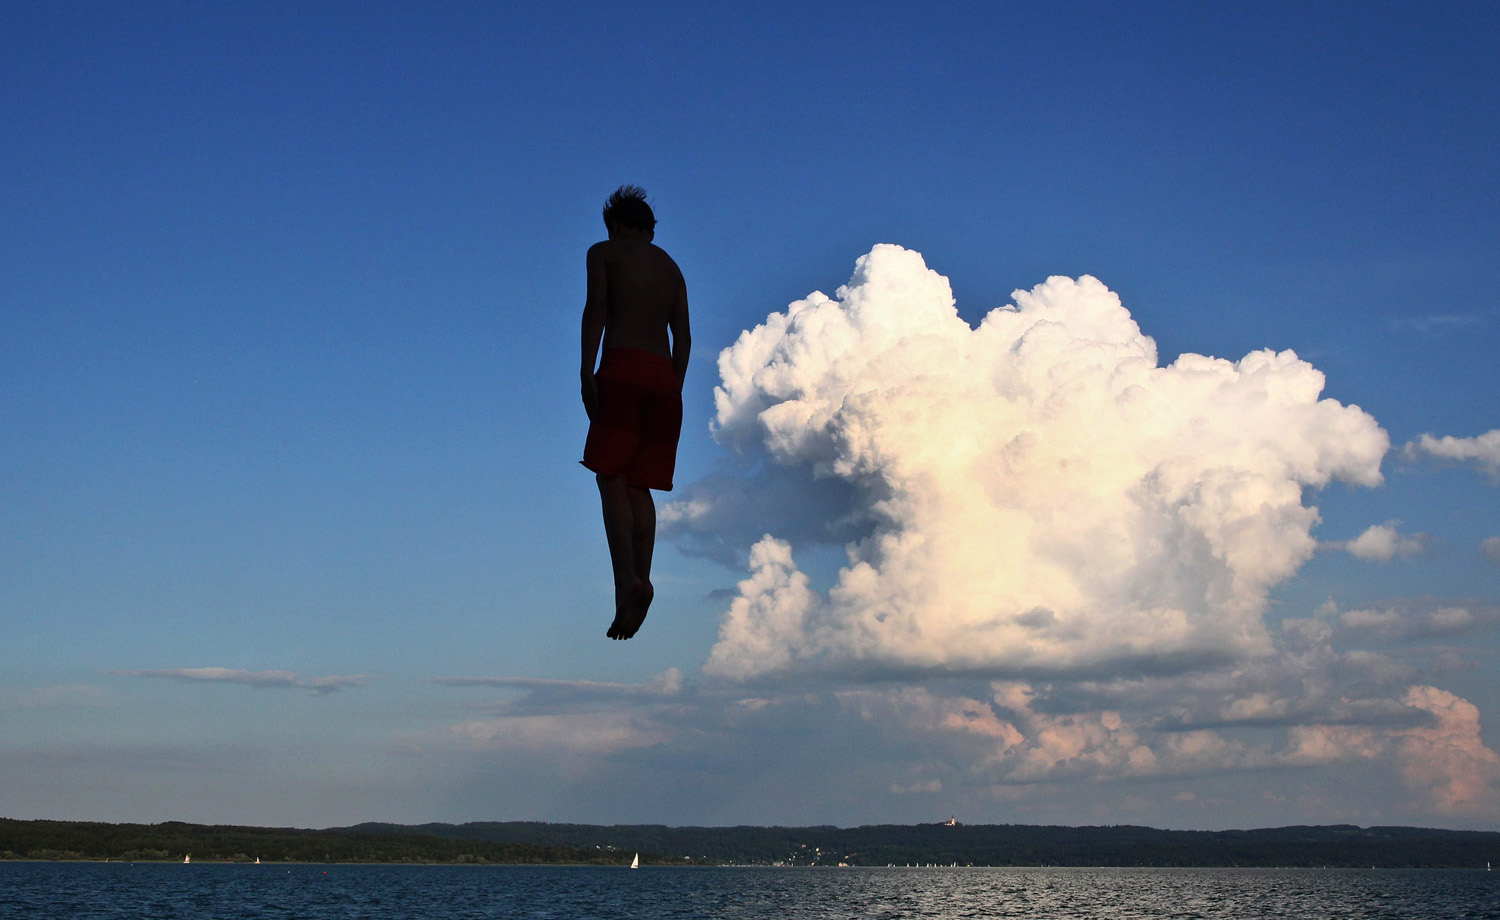 A young man jumps from a tower at a public bathing beach into the Lake Ammersee, in Utting, Bavaria state, Germany on July 23, 2014.